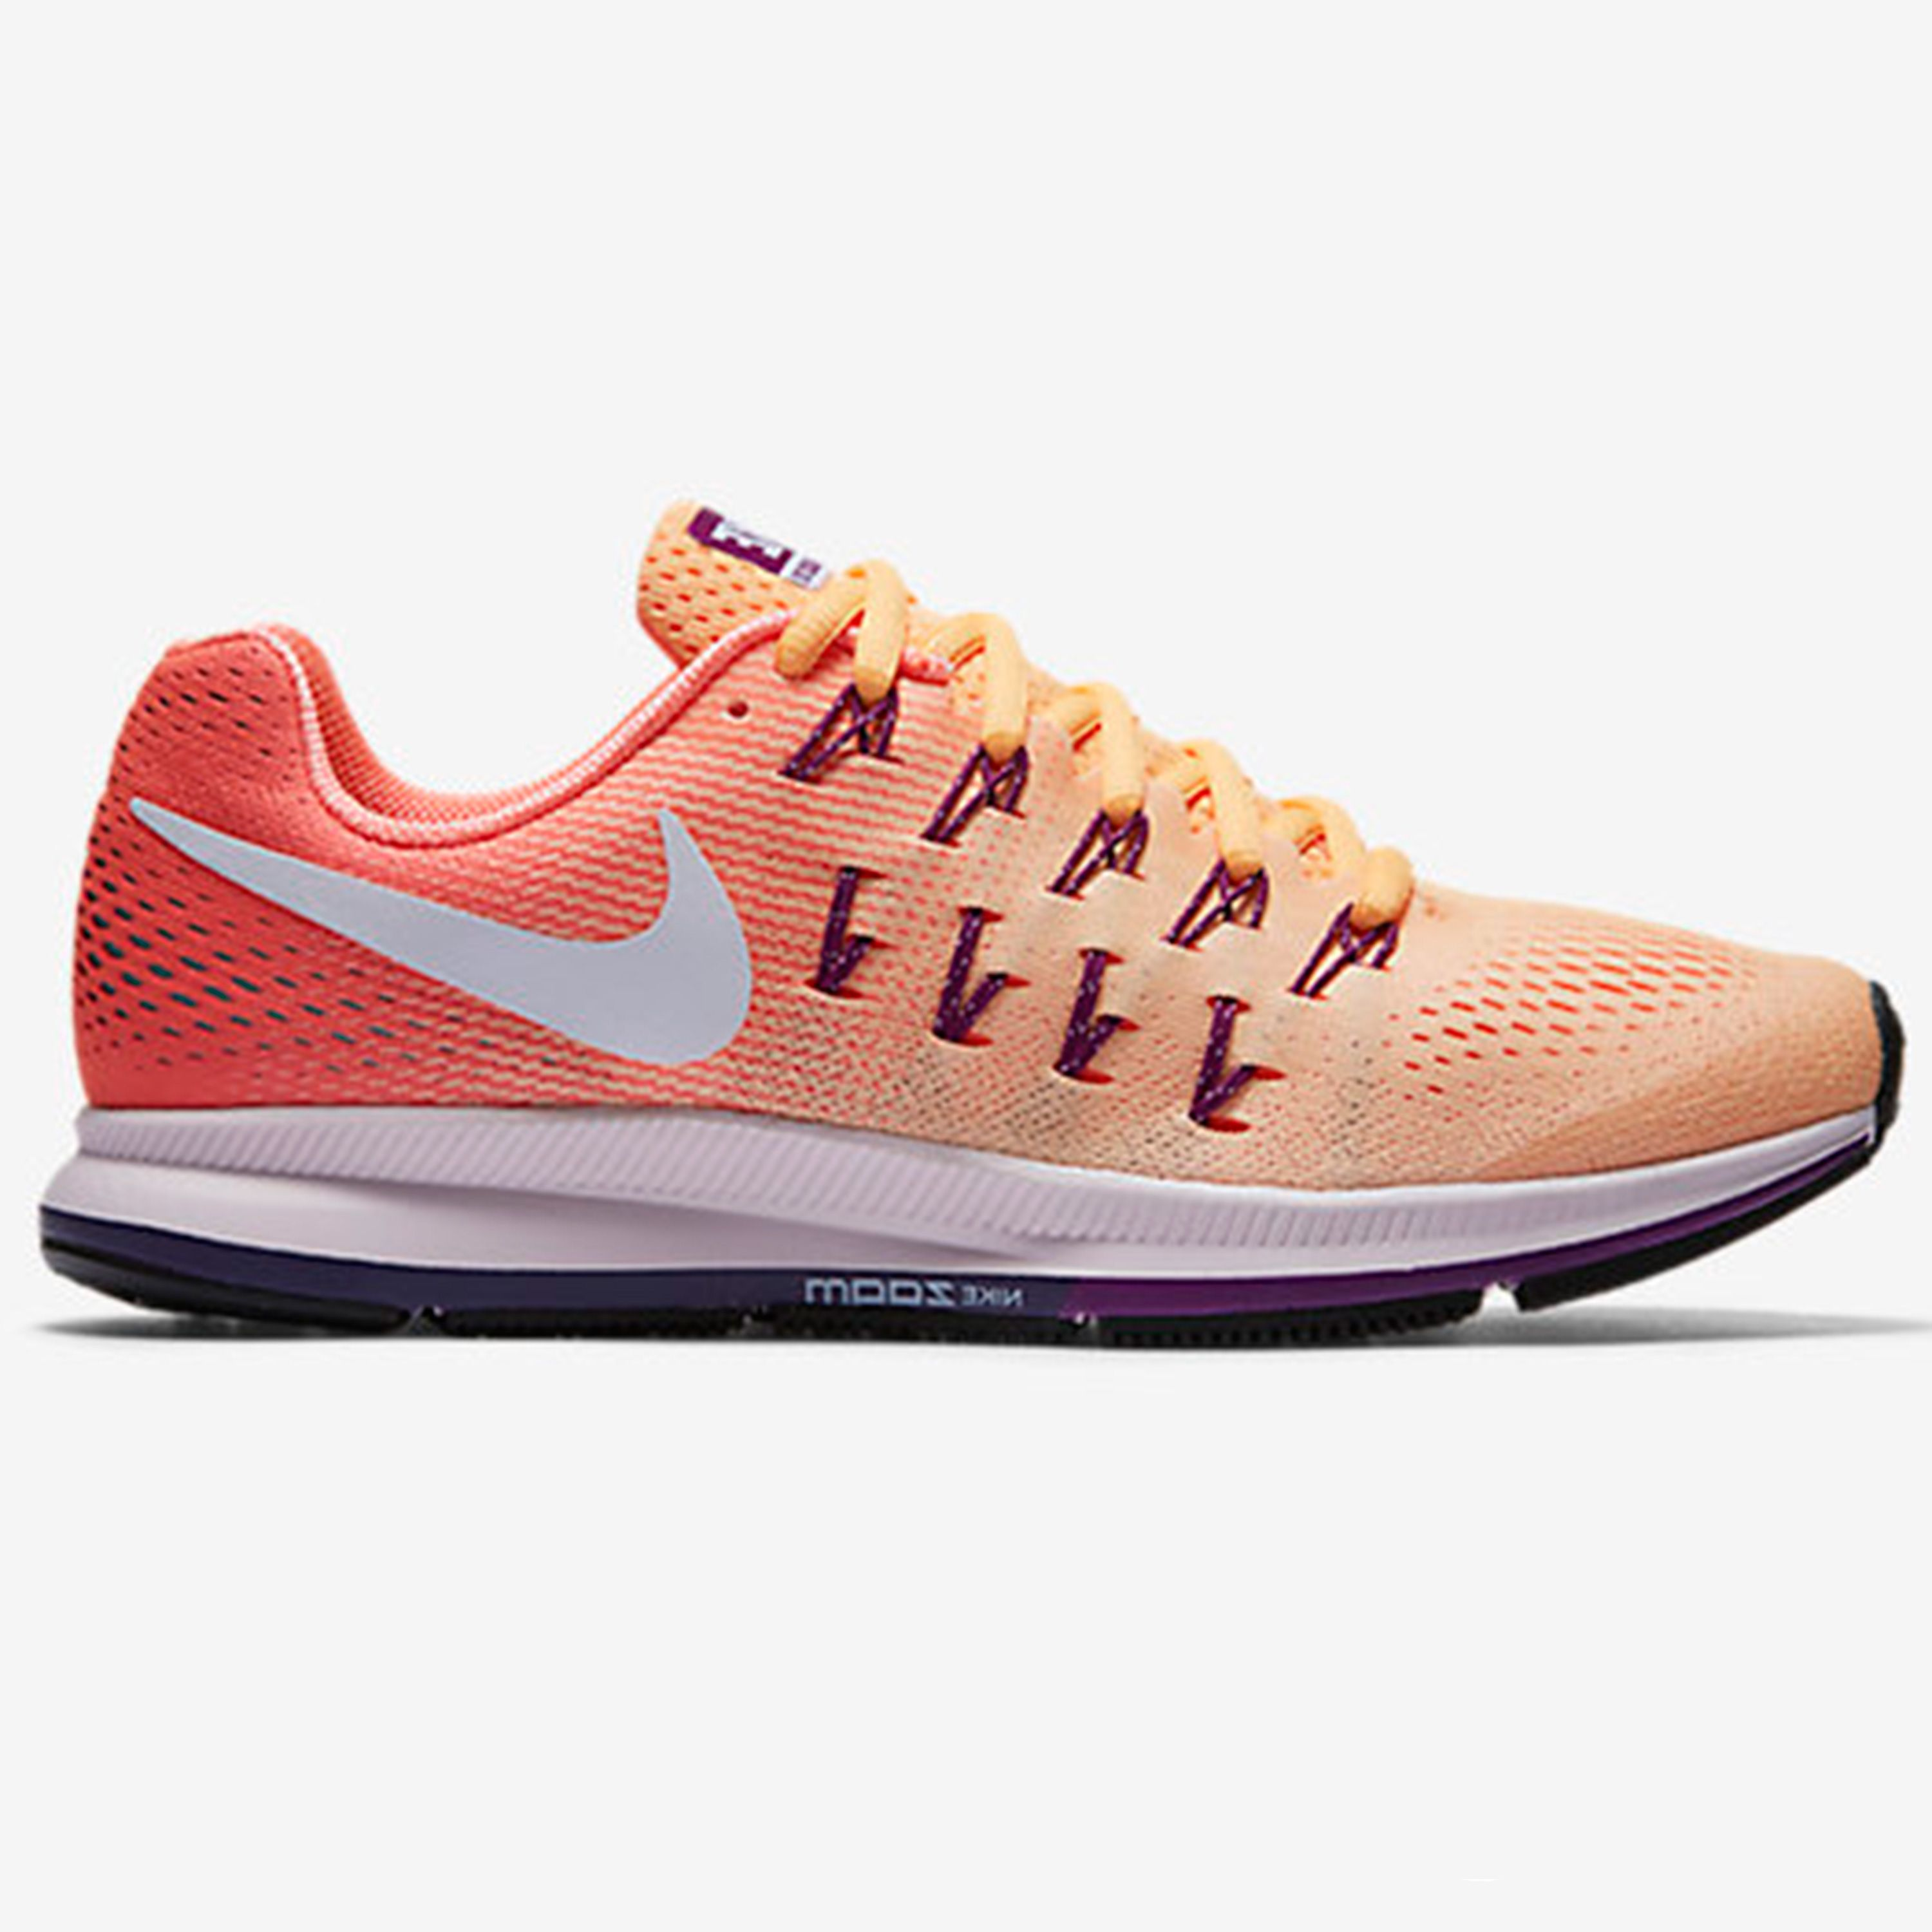 The best trainers for different workouts